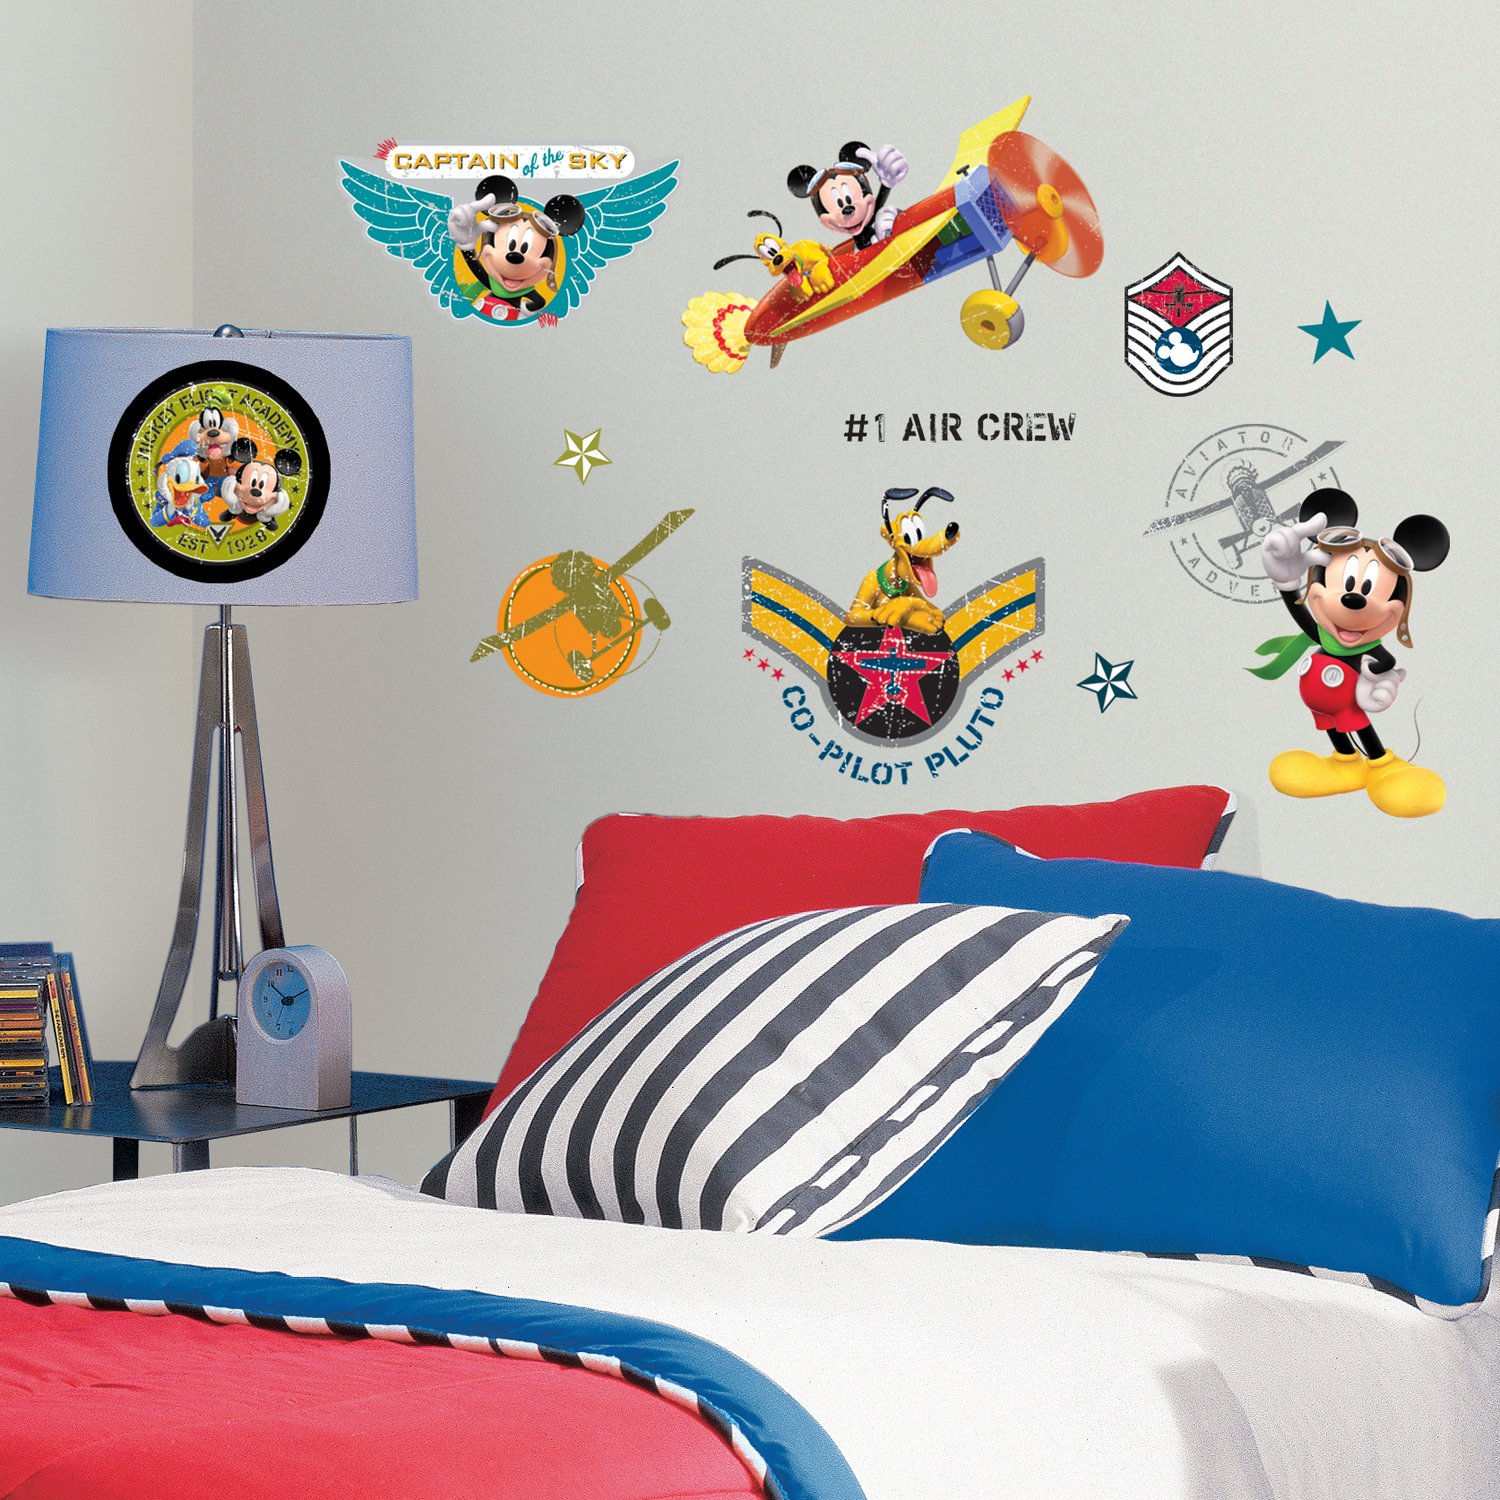 Roommates rmk1674scs mickey friends clubhouse pilot peel roommates rmk1674scs mickey friends clubhouse pilot peel stick wall decals decorative wall appliques amazon amipublicfo Choice Image